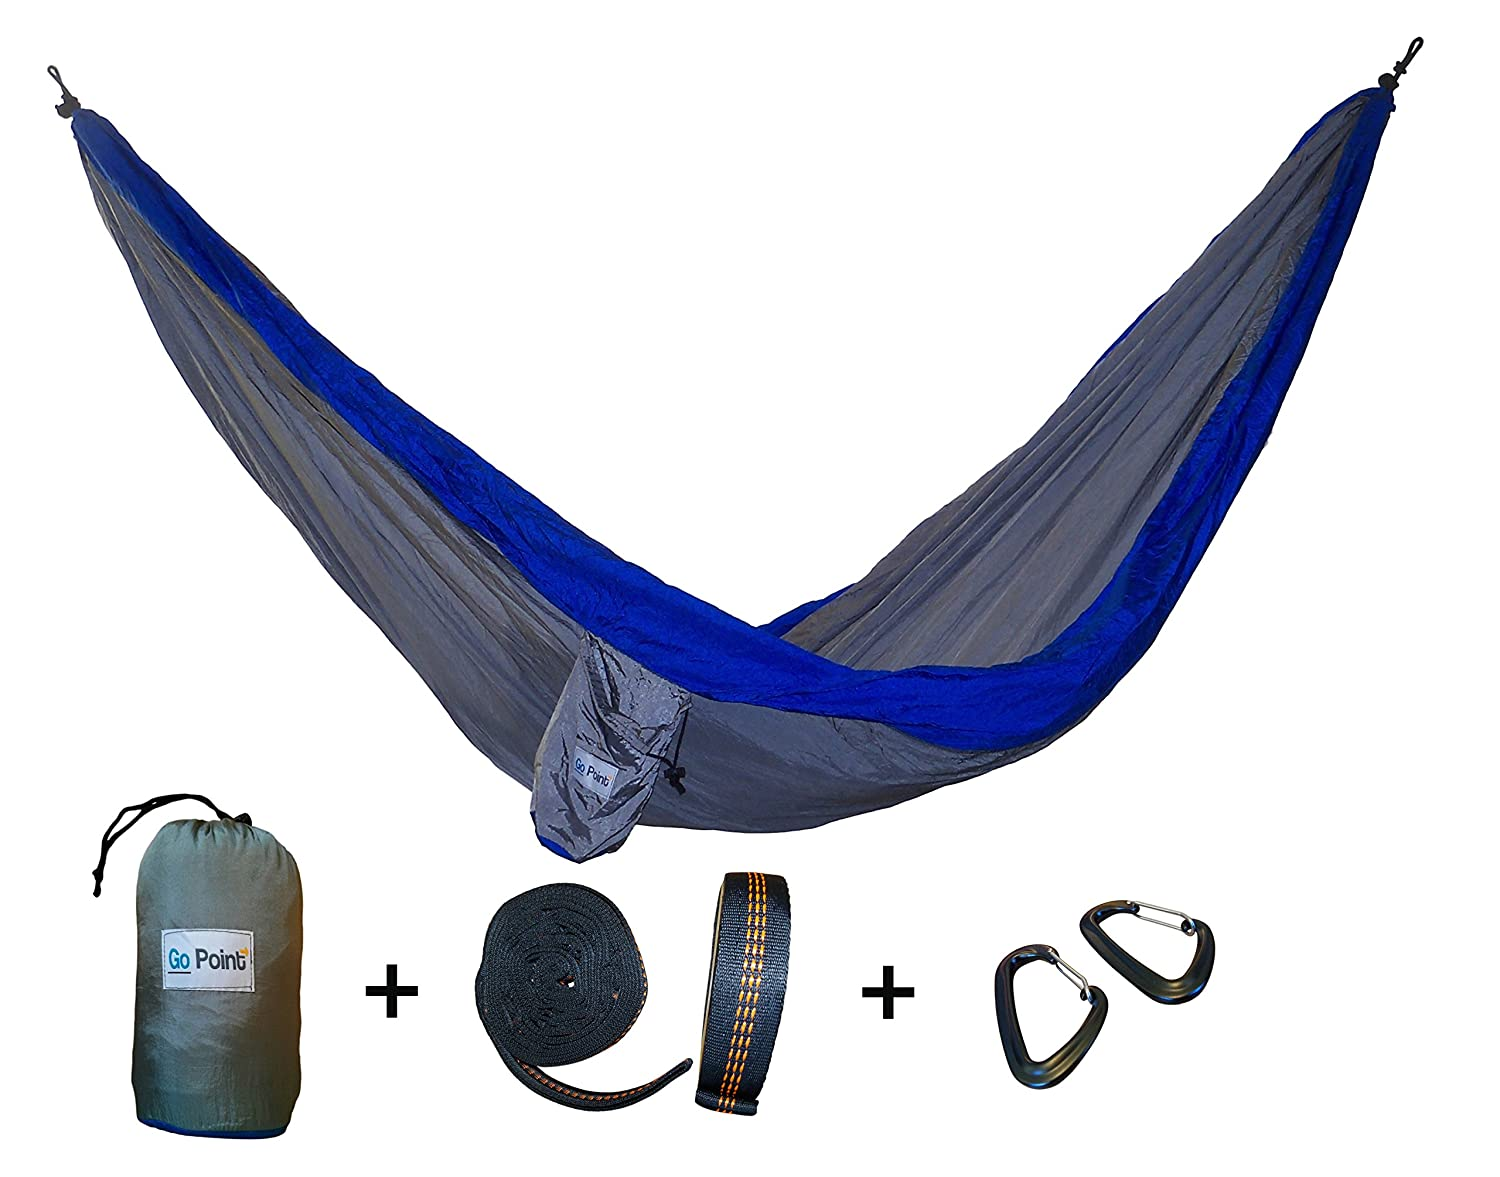 Gopoint Premium Double Parachute Hammock with Tree Straps – Quick and Easy to Hang Portable Lightweight Nylon Camping Hammock